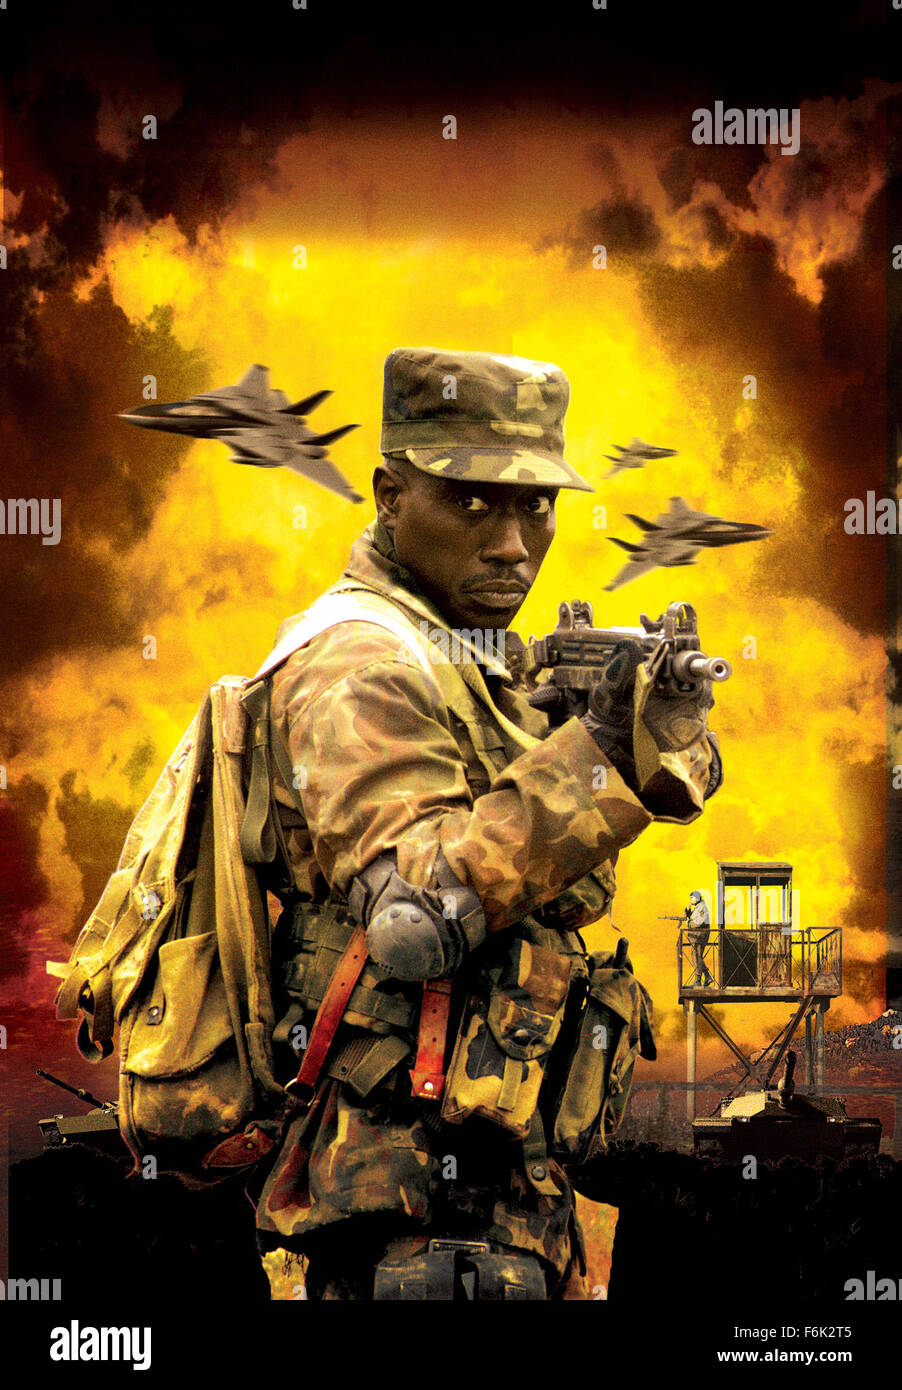 RELEASE DATE: September 6, 2005  MOVIE TITLE: The Marksman